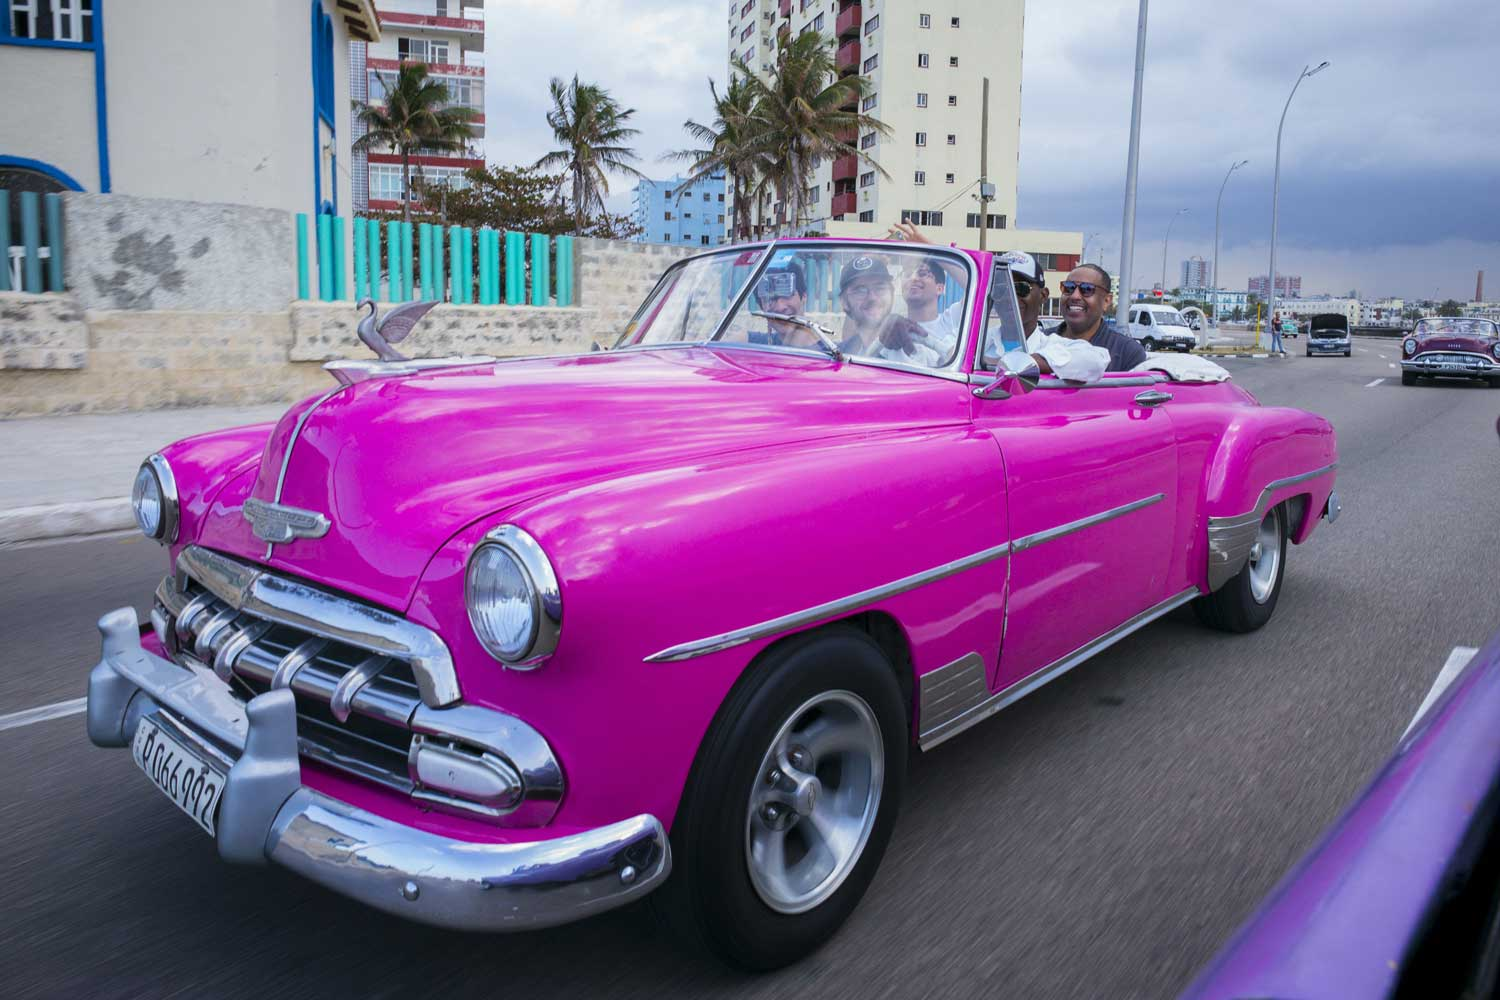 Vintage car in bright pink